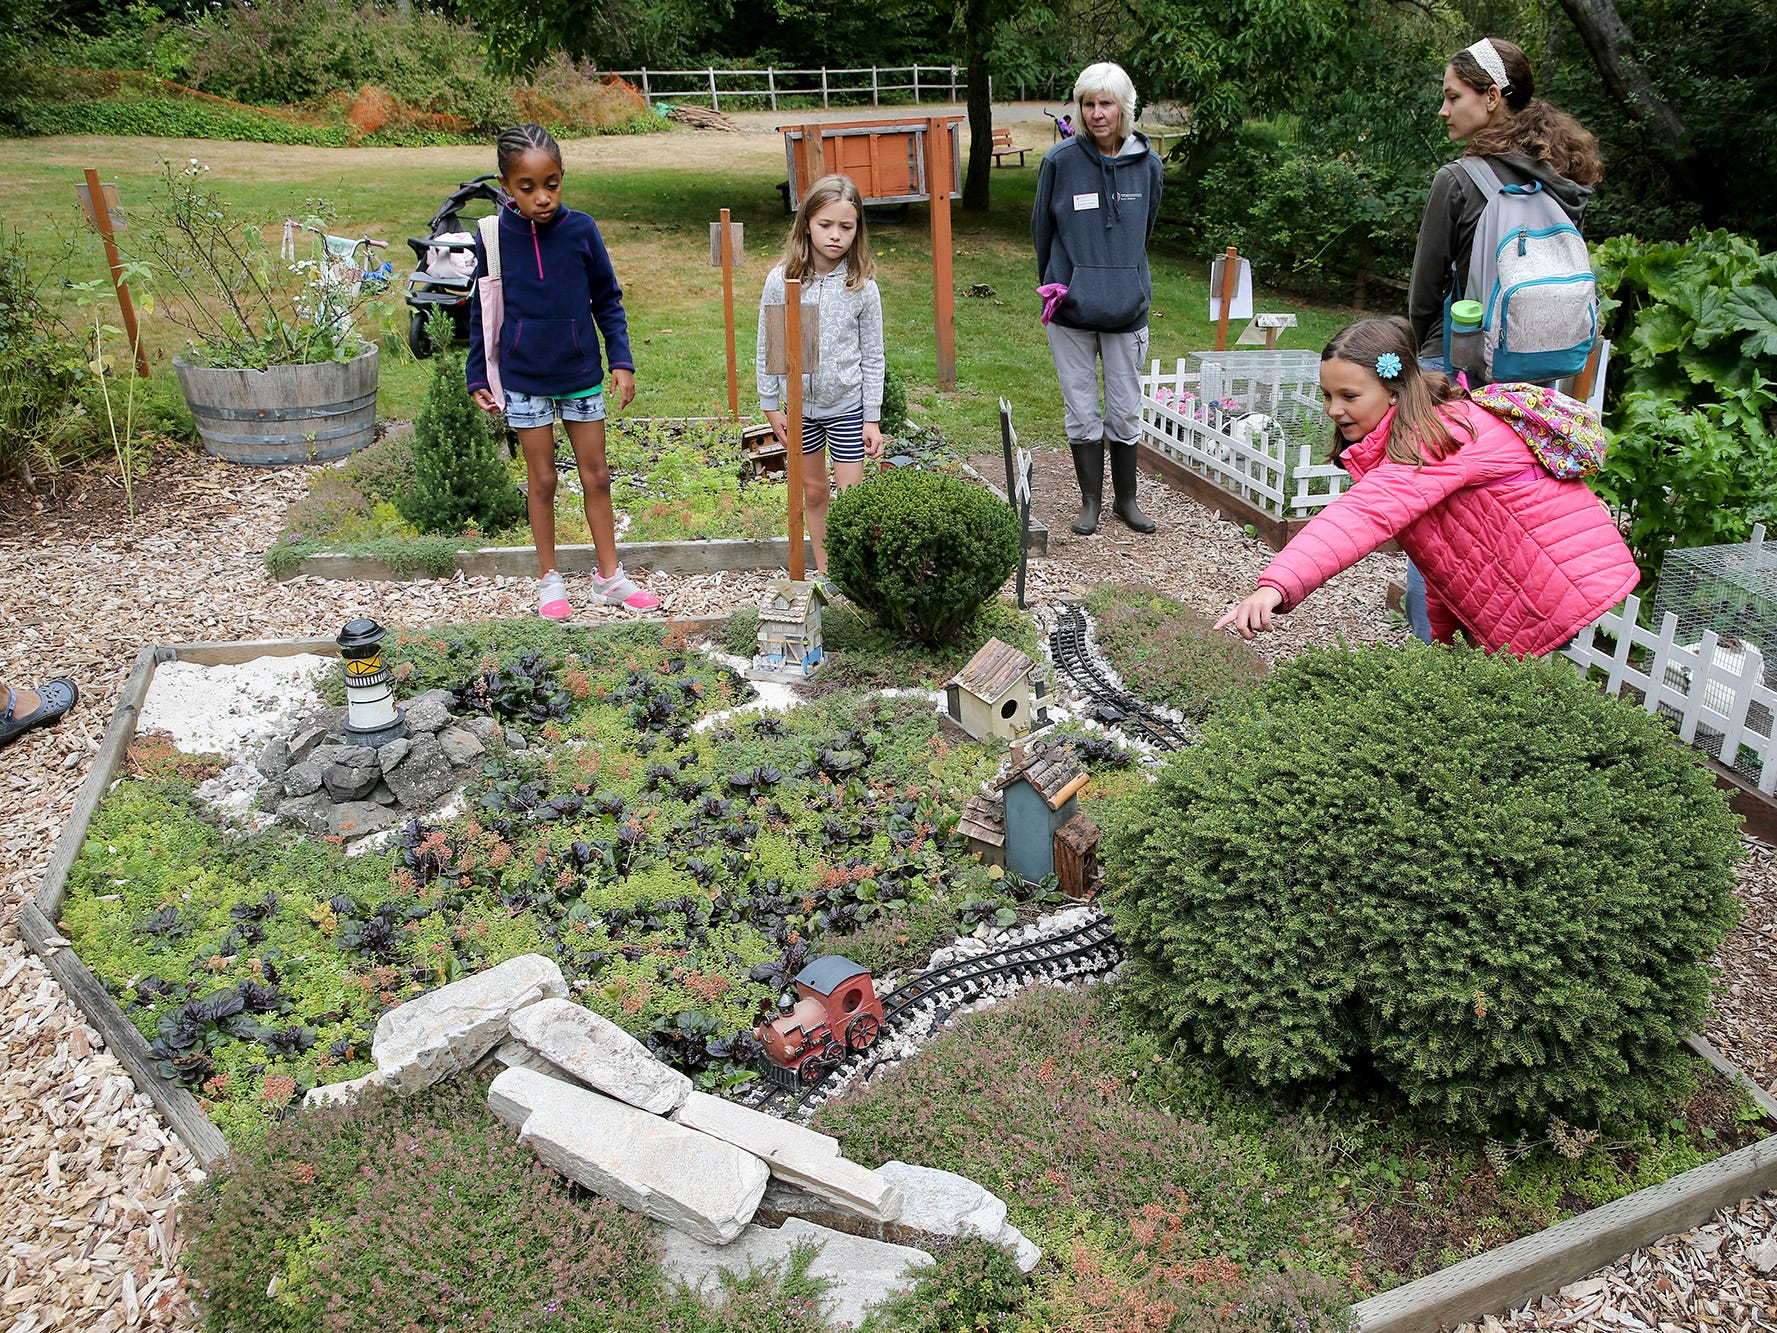 The 30th Anniversary celebration open house was held at Anna Smith Garden on Saturday, August 4, 2018.